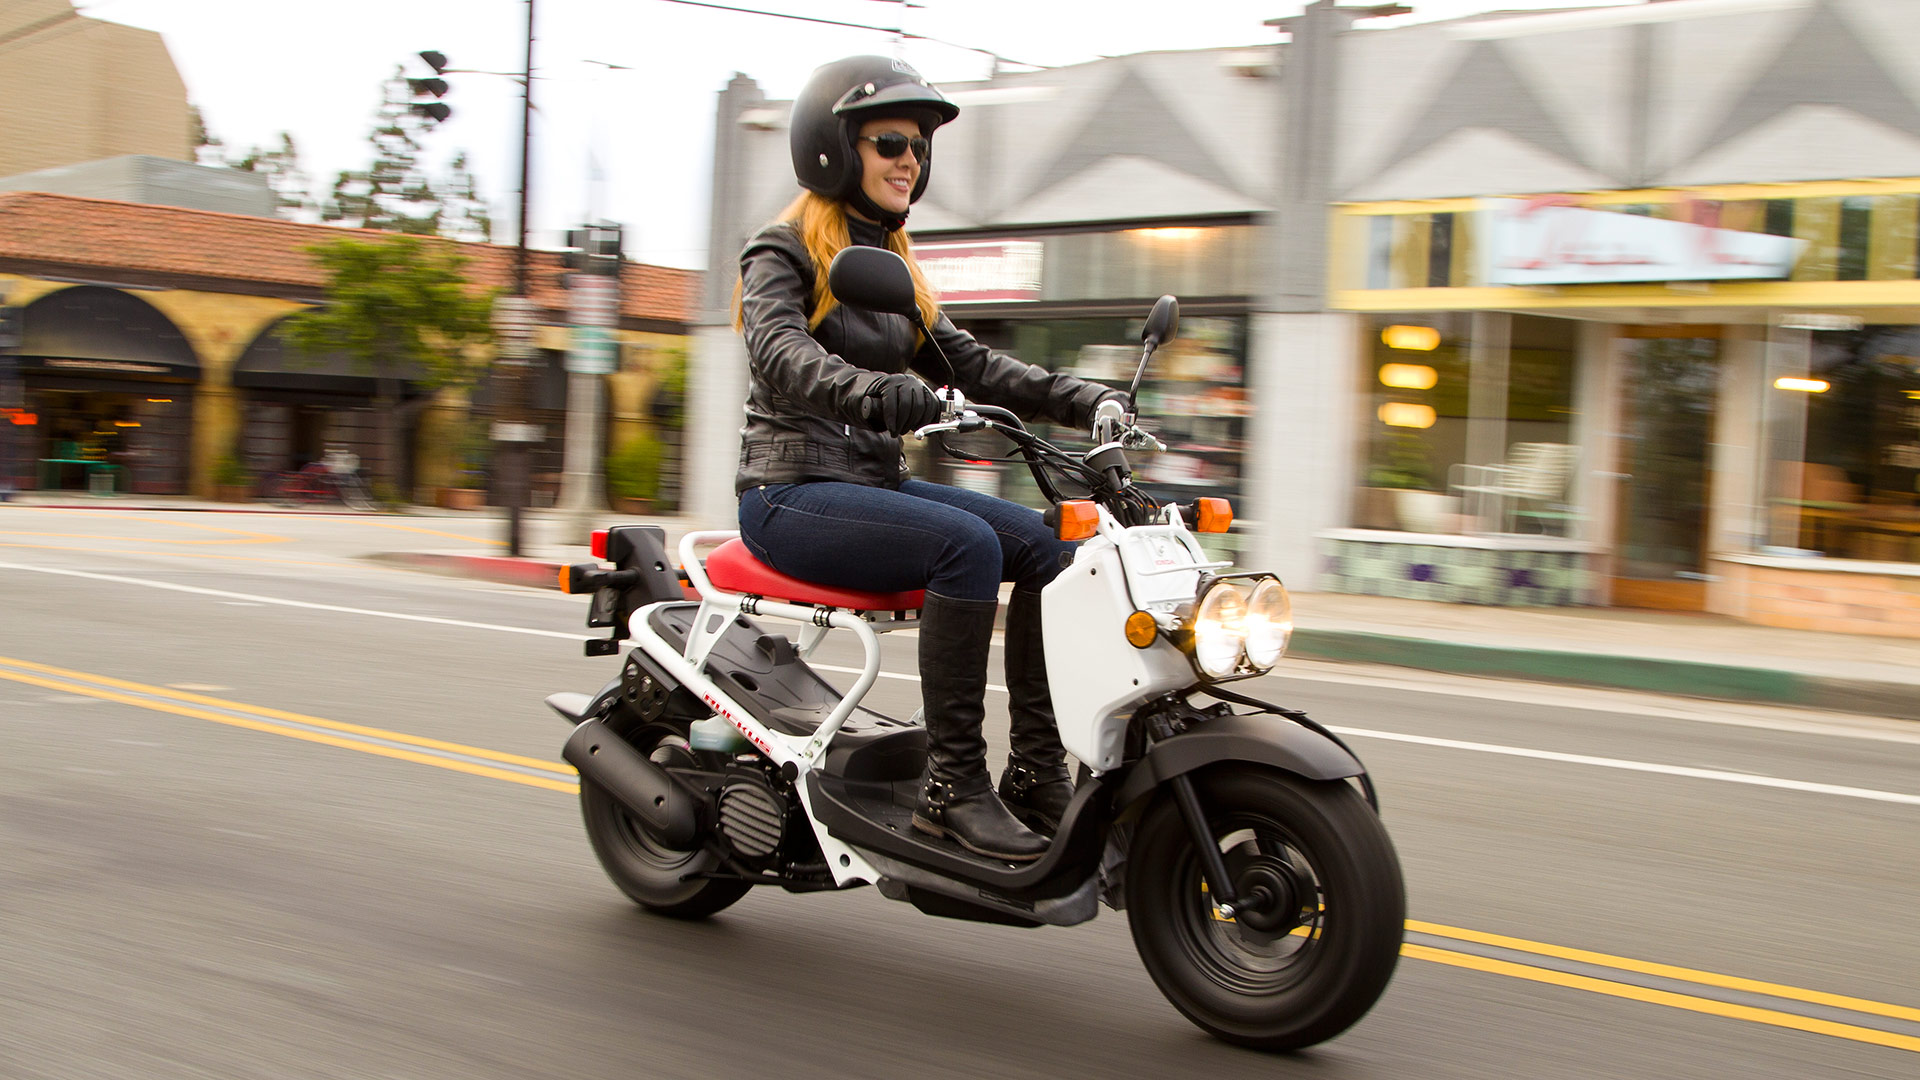 7 Reasons You Should Ride A Scooter Instead Of Motorcycle